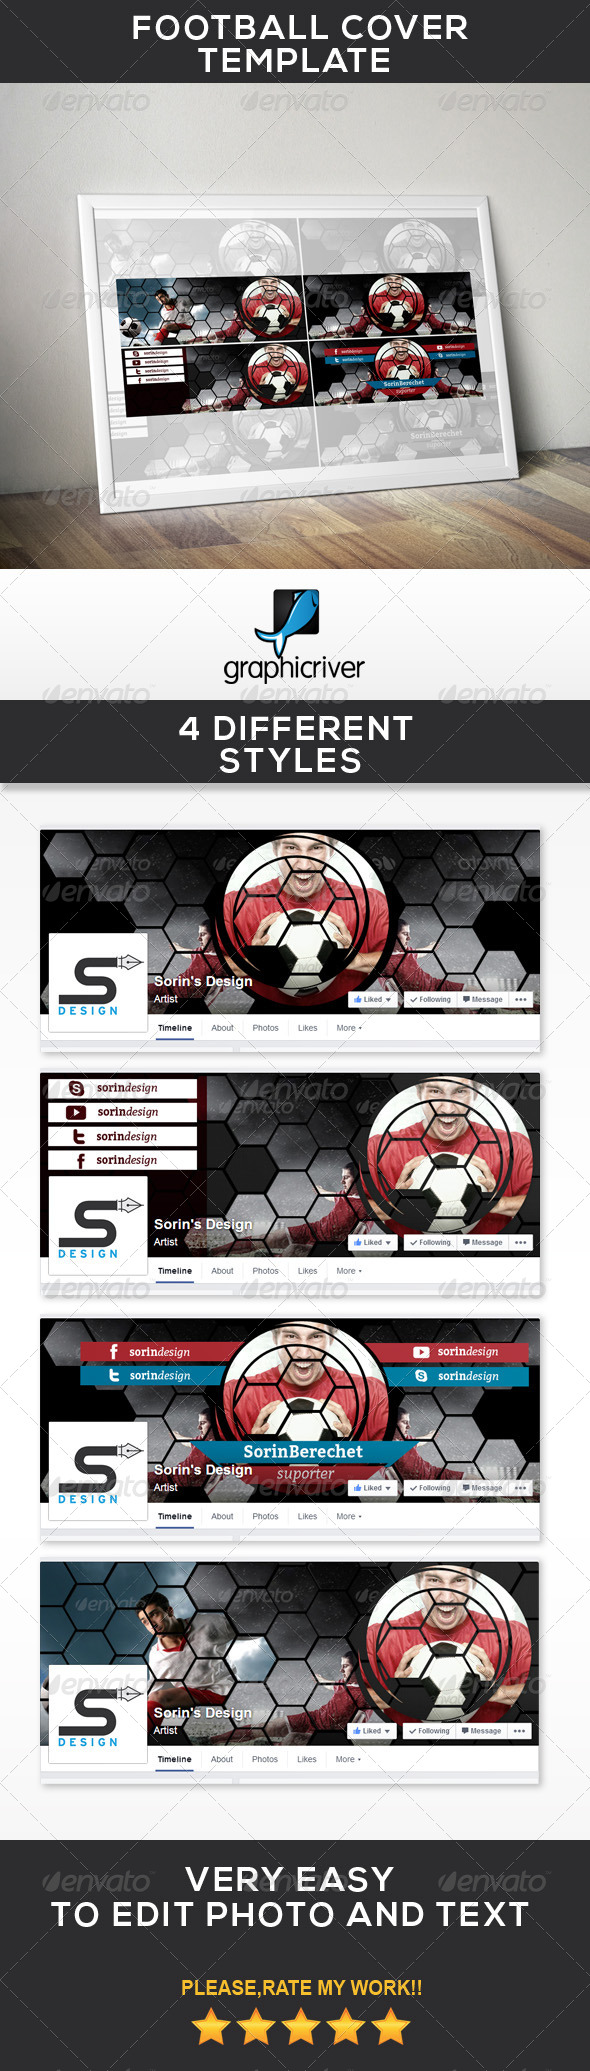 GraphicRiver Football Cover Template 7886909